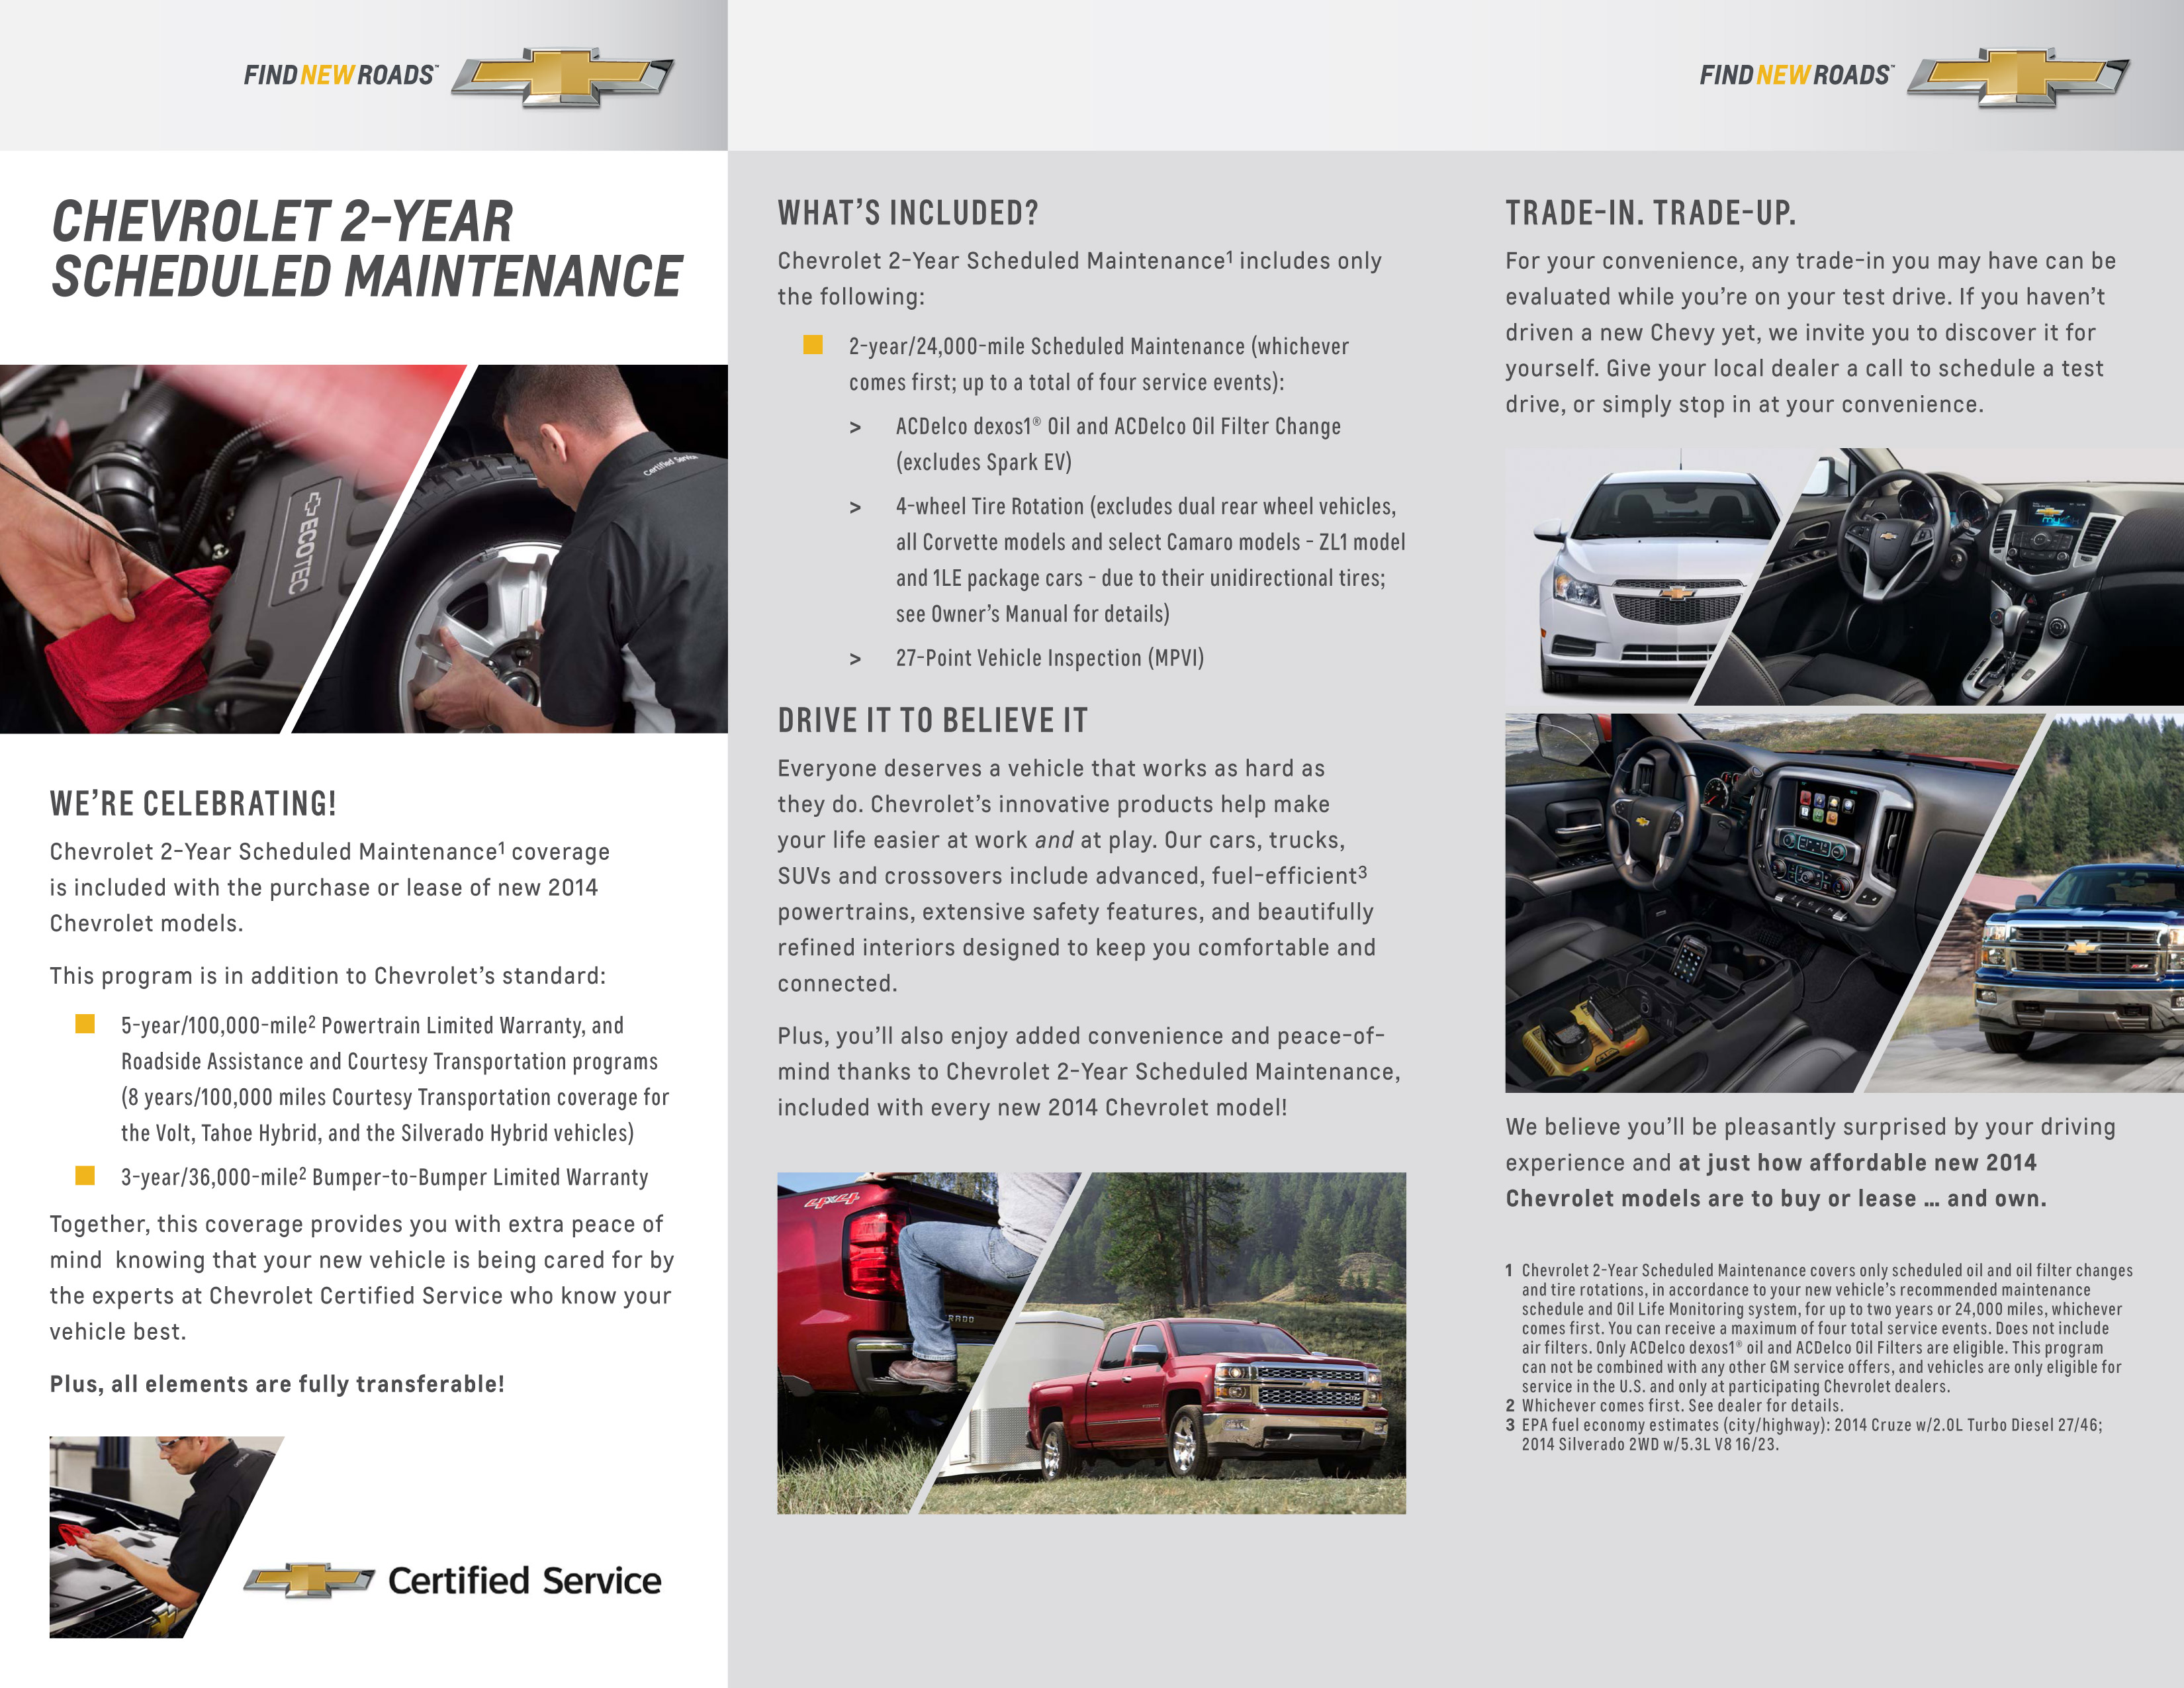 Chevy Dealership Fayetteville Nc >> Chevrolet 2-Year Scheduled Maintenance Plan | Fayetteville, NC